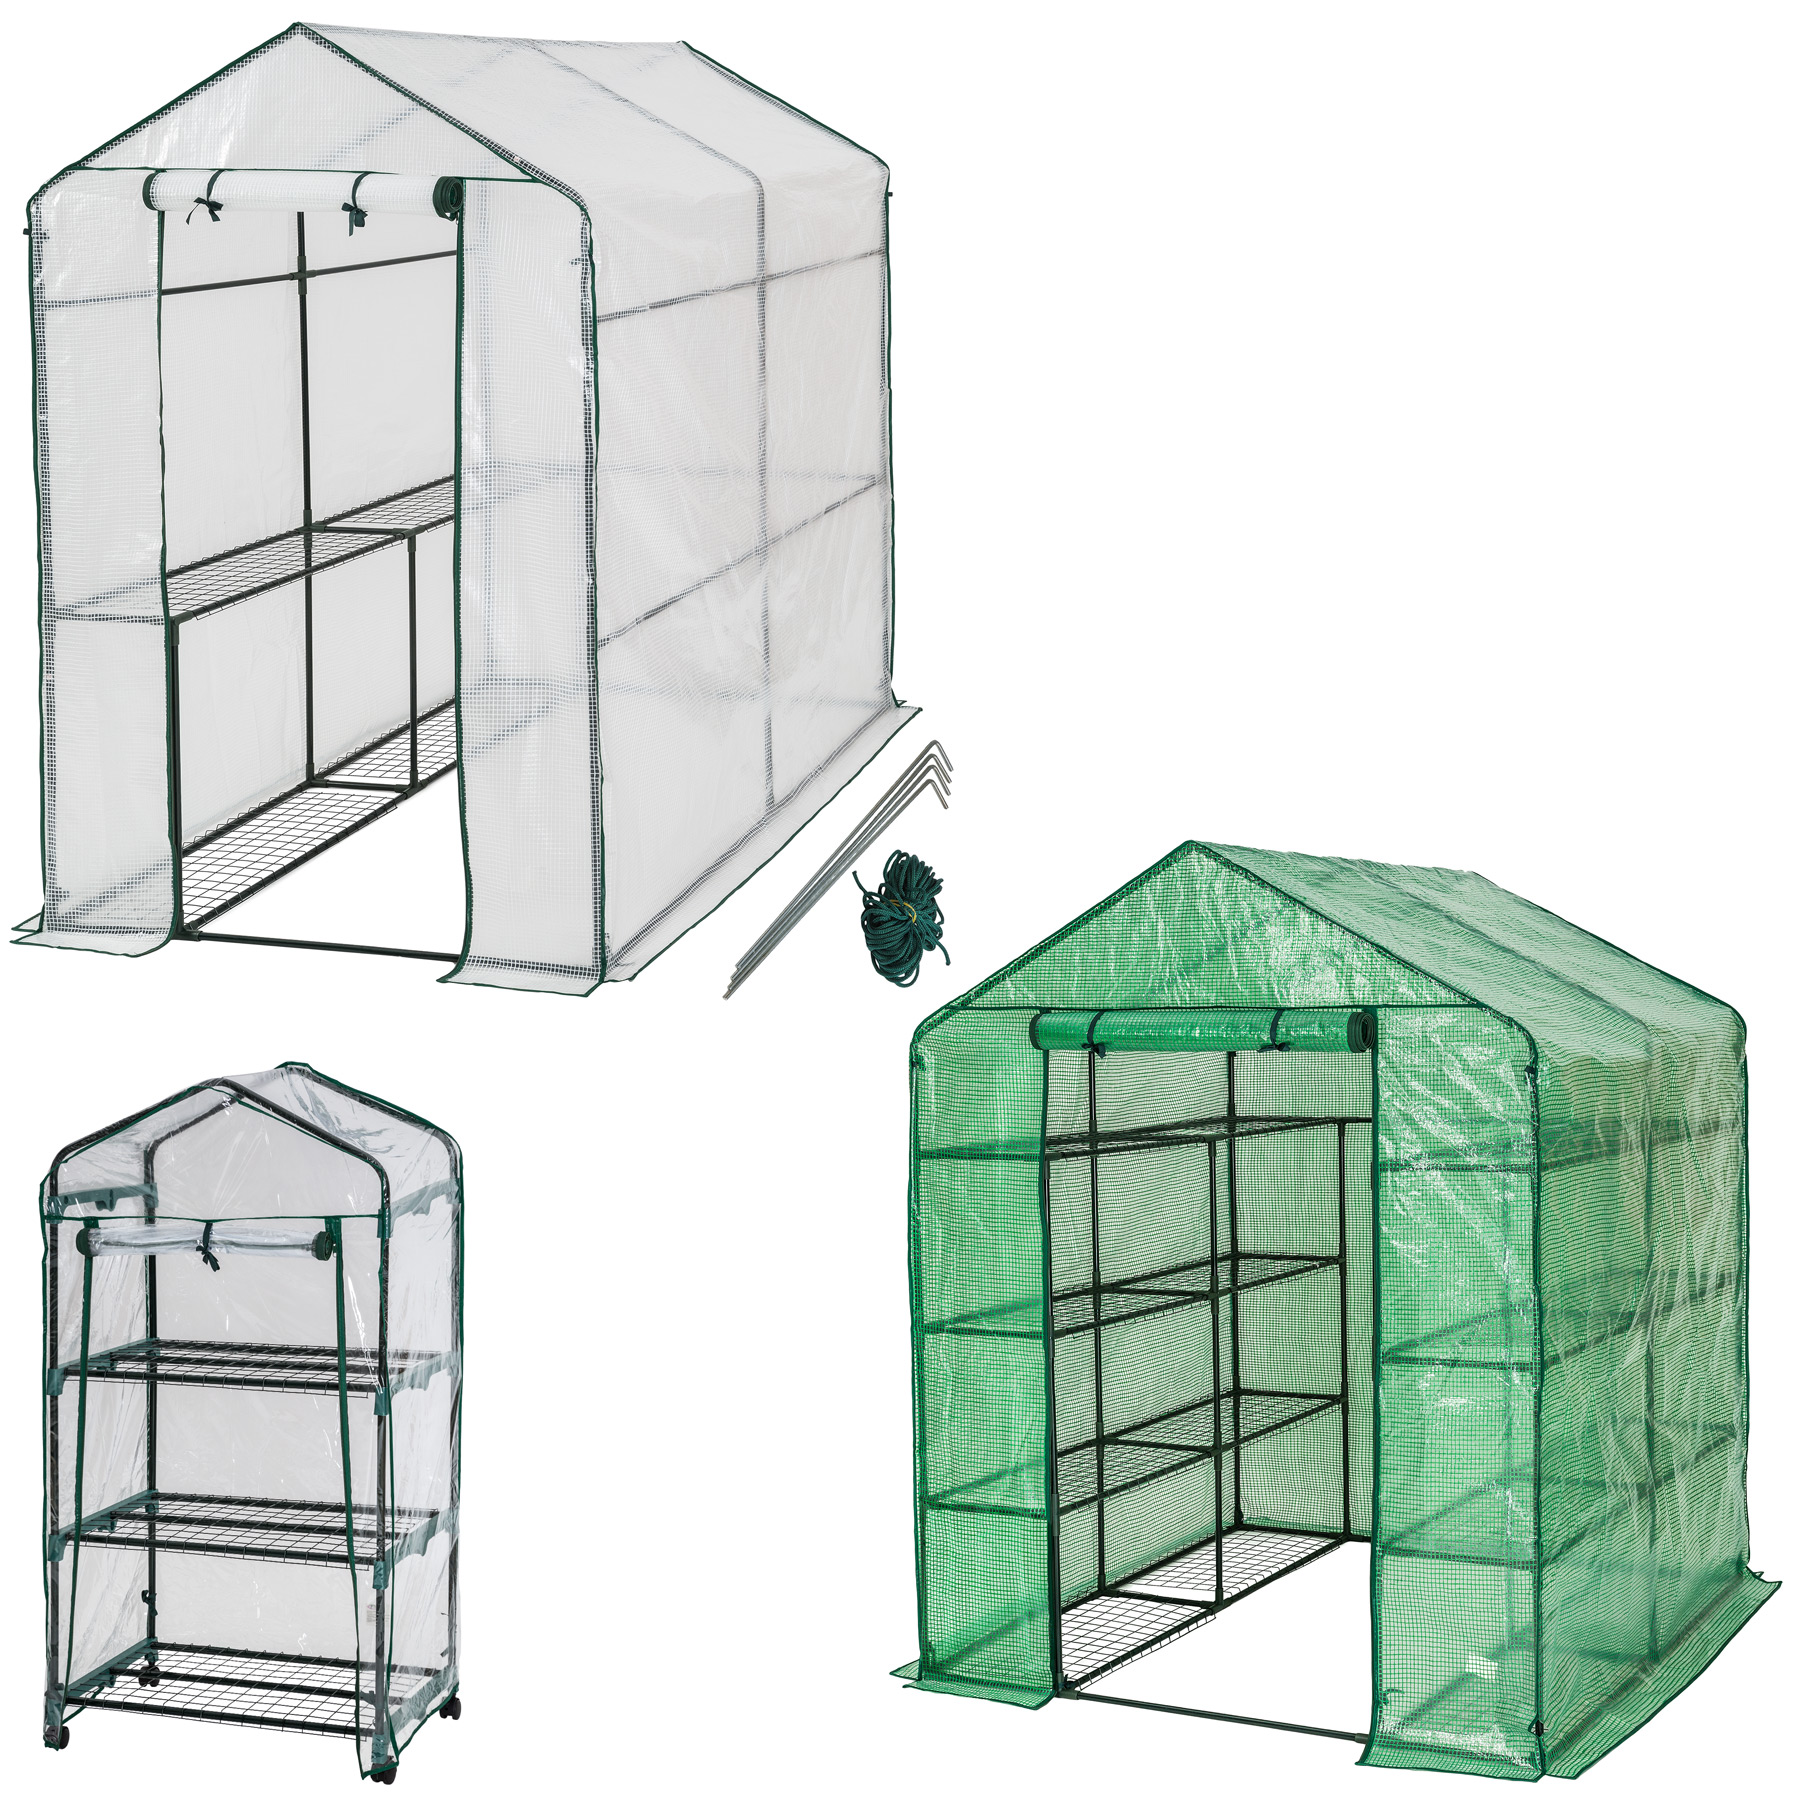 Greenhouse with shelf pvc cover growhouse outdoor tent house plants ebay - Serre de jardin 12m2 ...